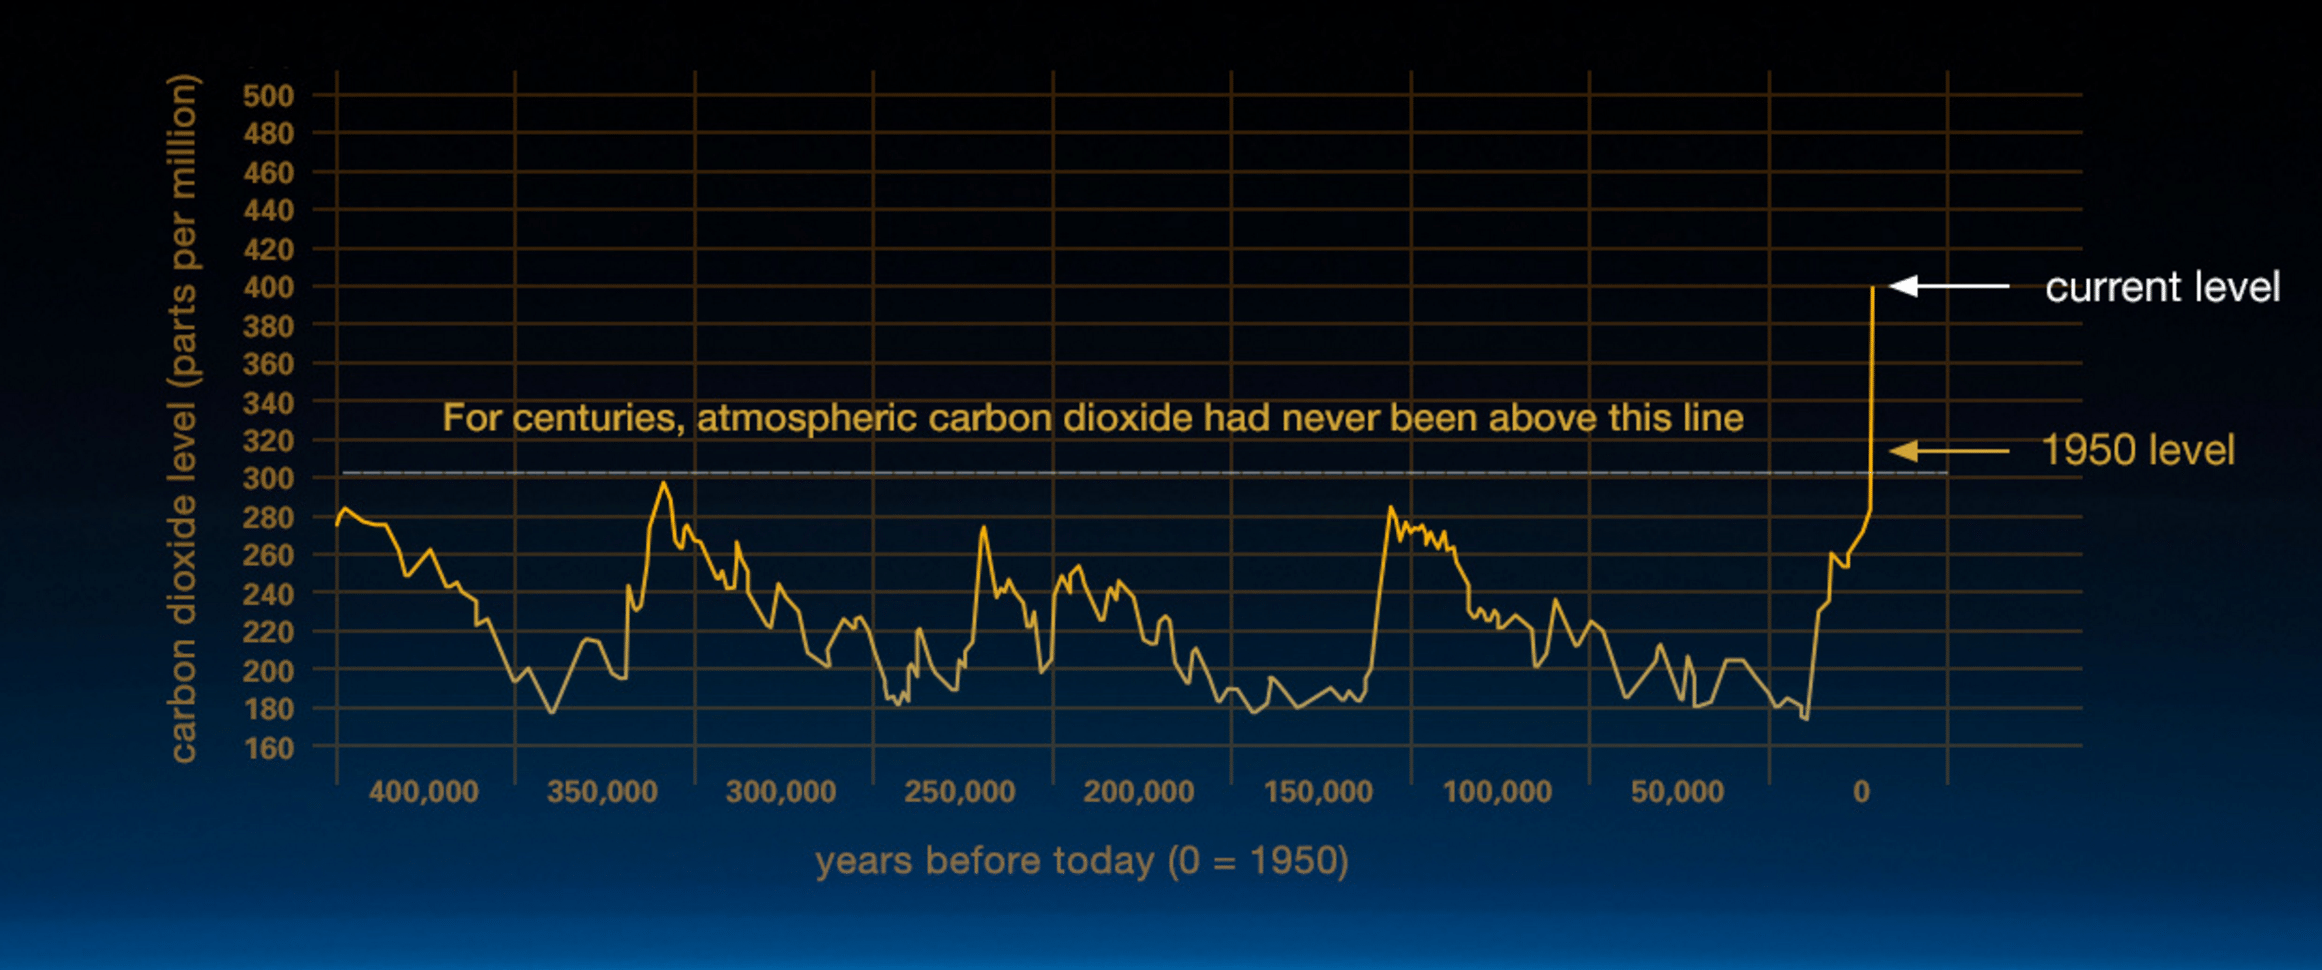 This graph, based on the comparison of atmospheric samples contained in ice cores and more recent direct measurements, provides evidence that atmospheric CO2 has increased since the Industrial Revolution. (Credit: Vostok ice core data/J.R. Petit et al.; NOAA Mauna Loa CO2 record.